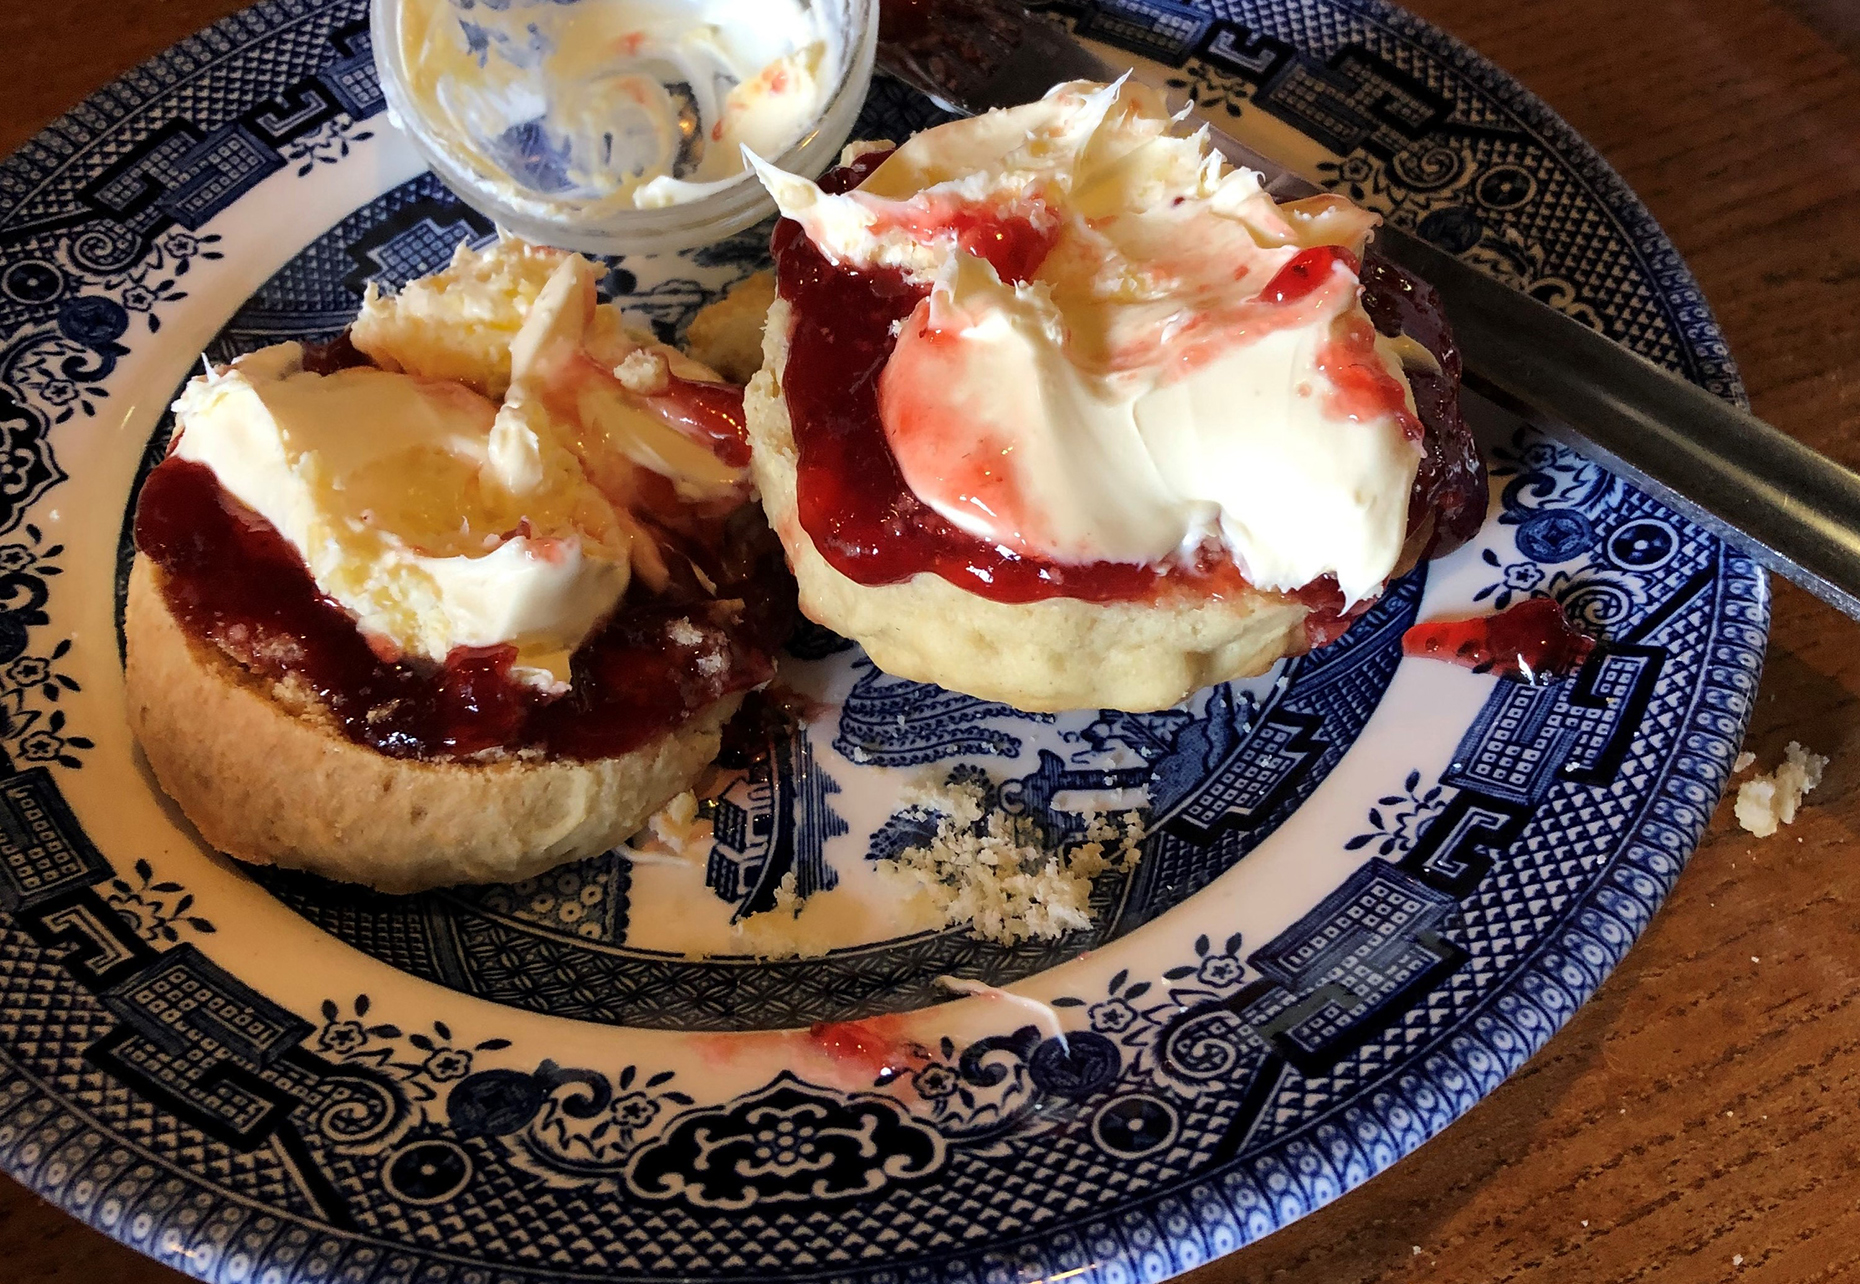 Scones at Belinda's Tea Rooms